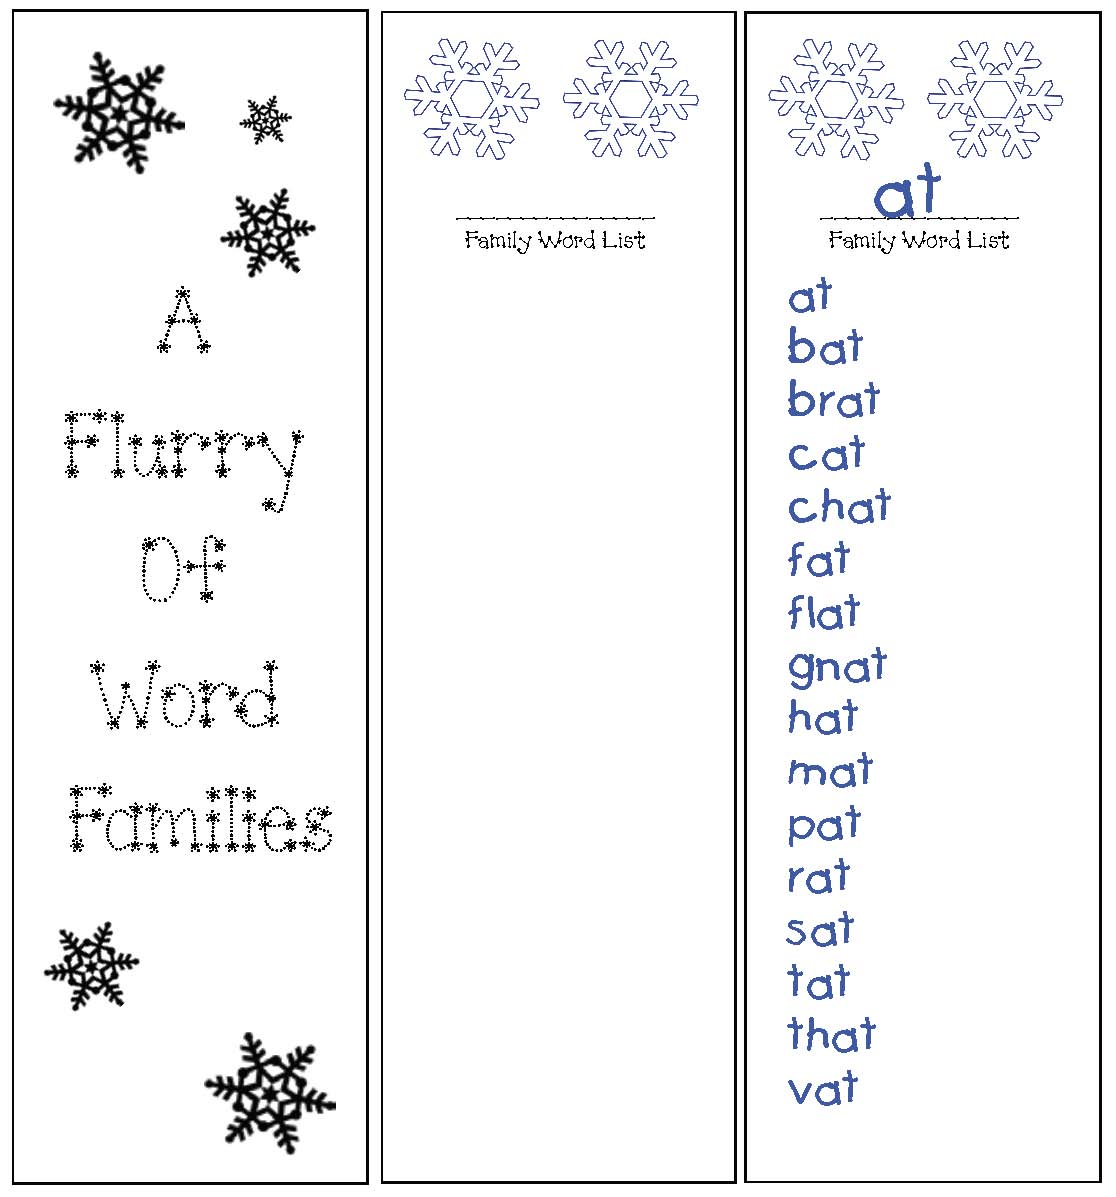 snowflake templates, word family activities, 70 word families, list of word families, january bulletin boards, snowflake patterns, snowflake crafts, snowflake bulletin boards, daily 5 word work, daily 5 word work for january, winter word work, word family word work, common core snowflakes, common core word families, list of word families, list of word family words